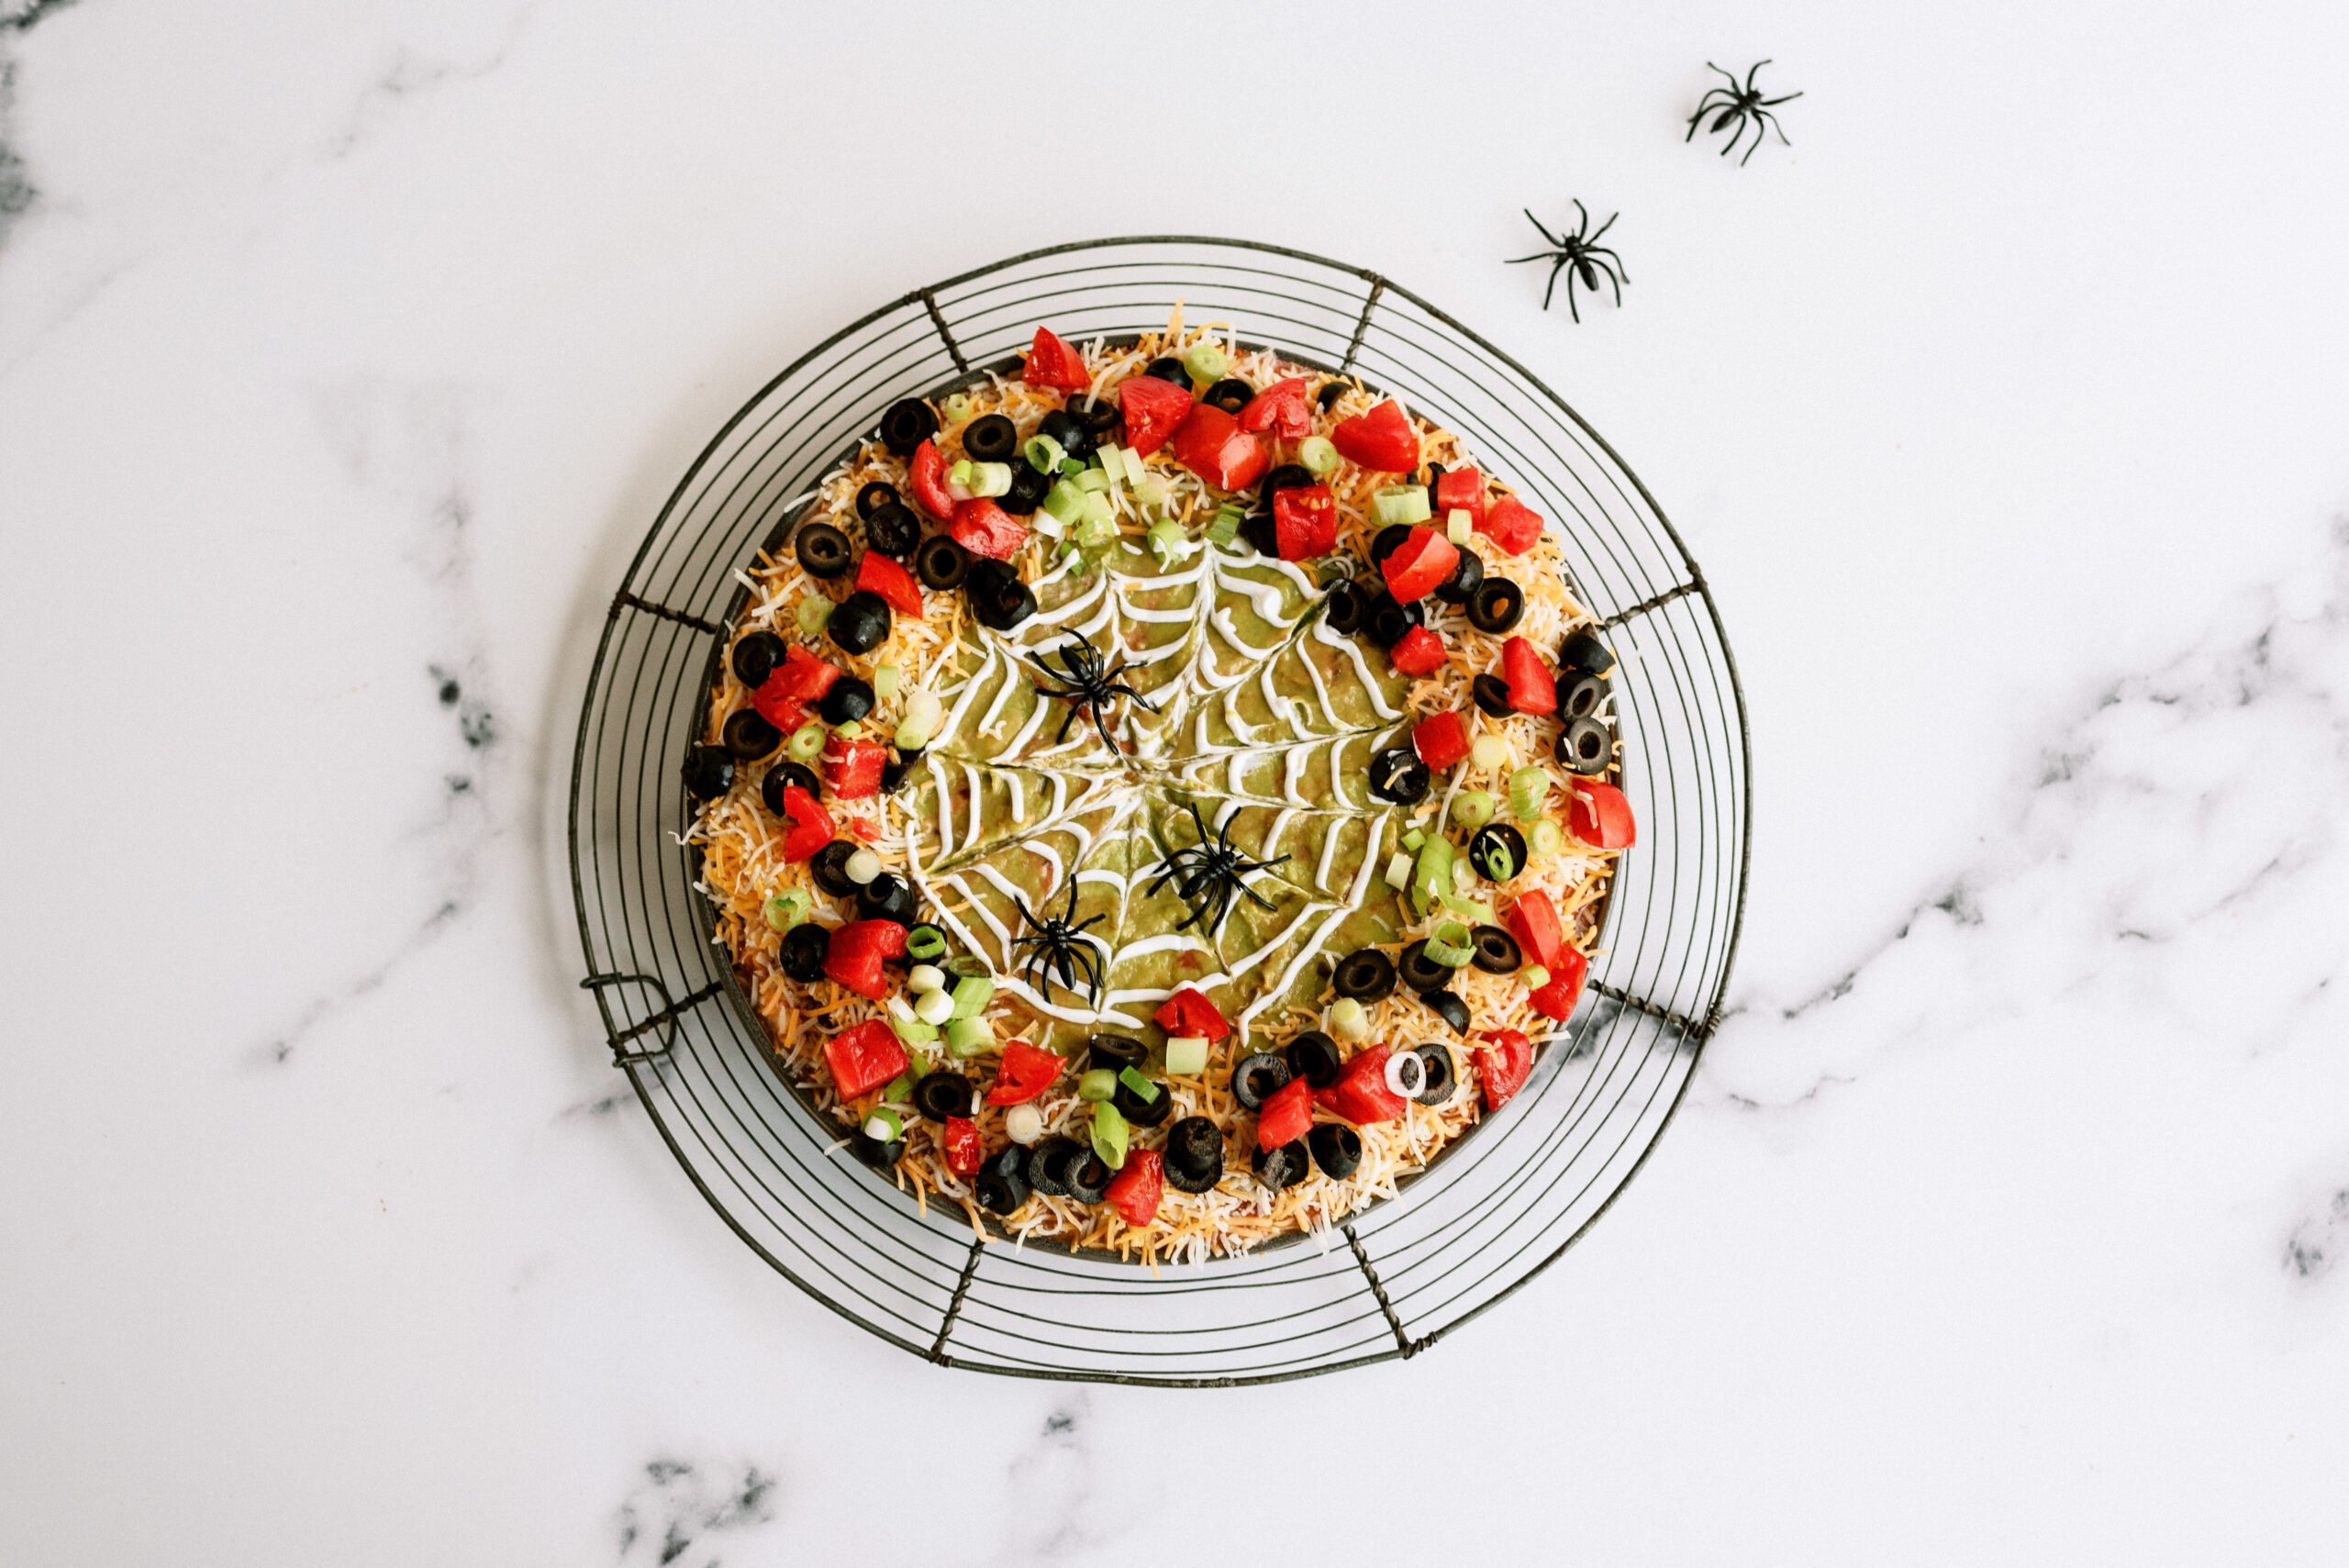 Finished spooky 7-layer dip with fake spiders